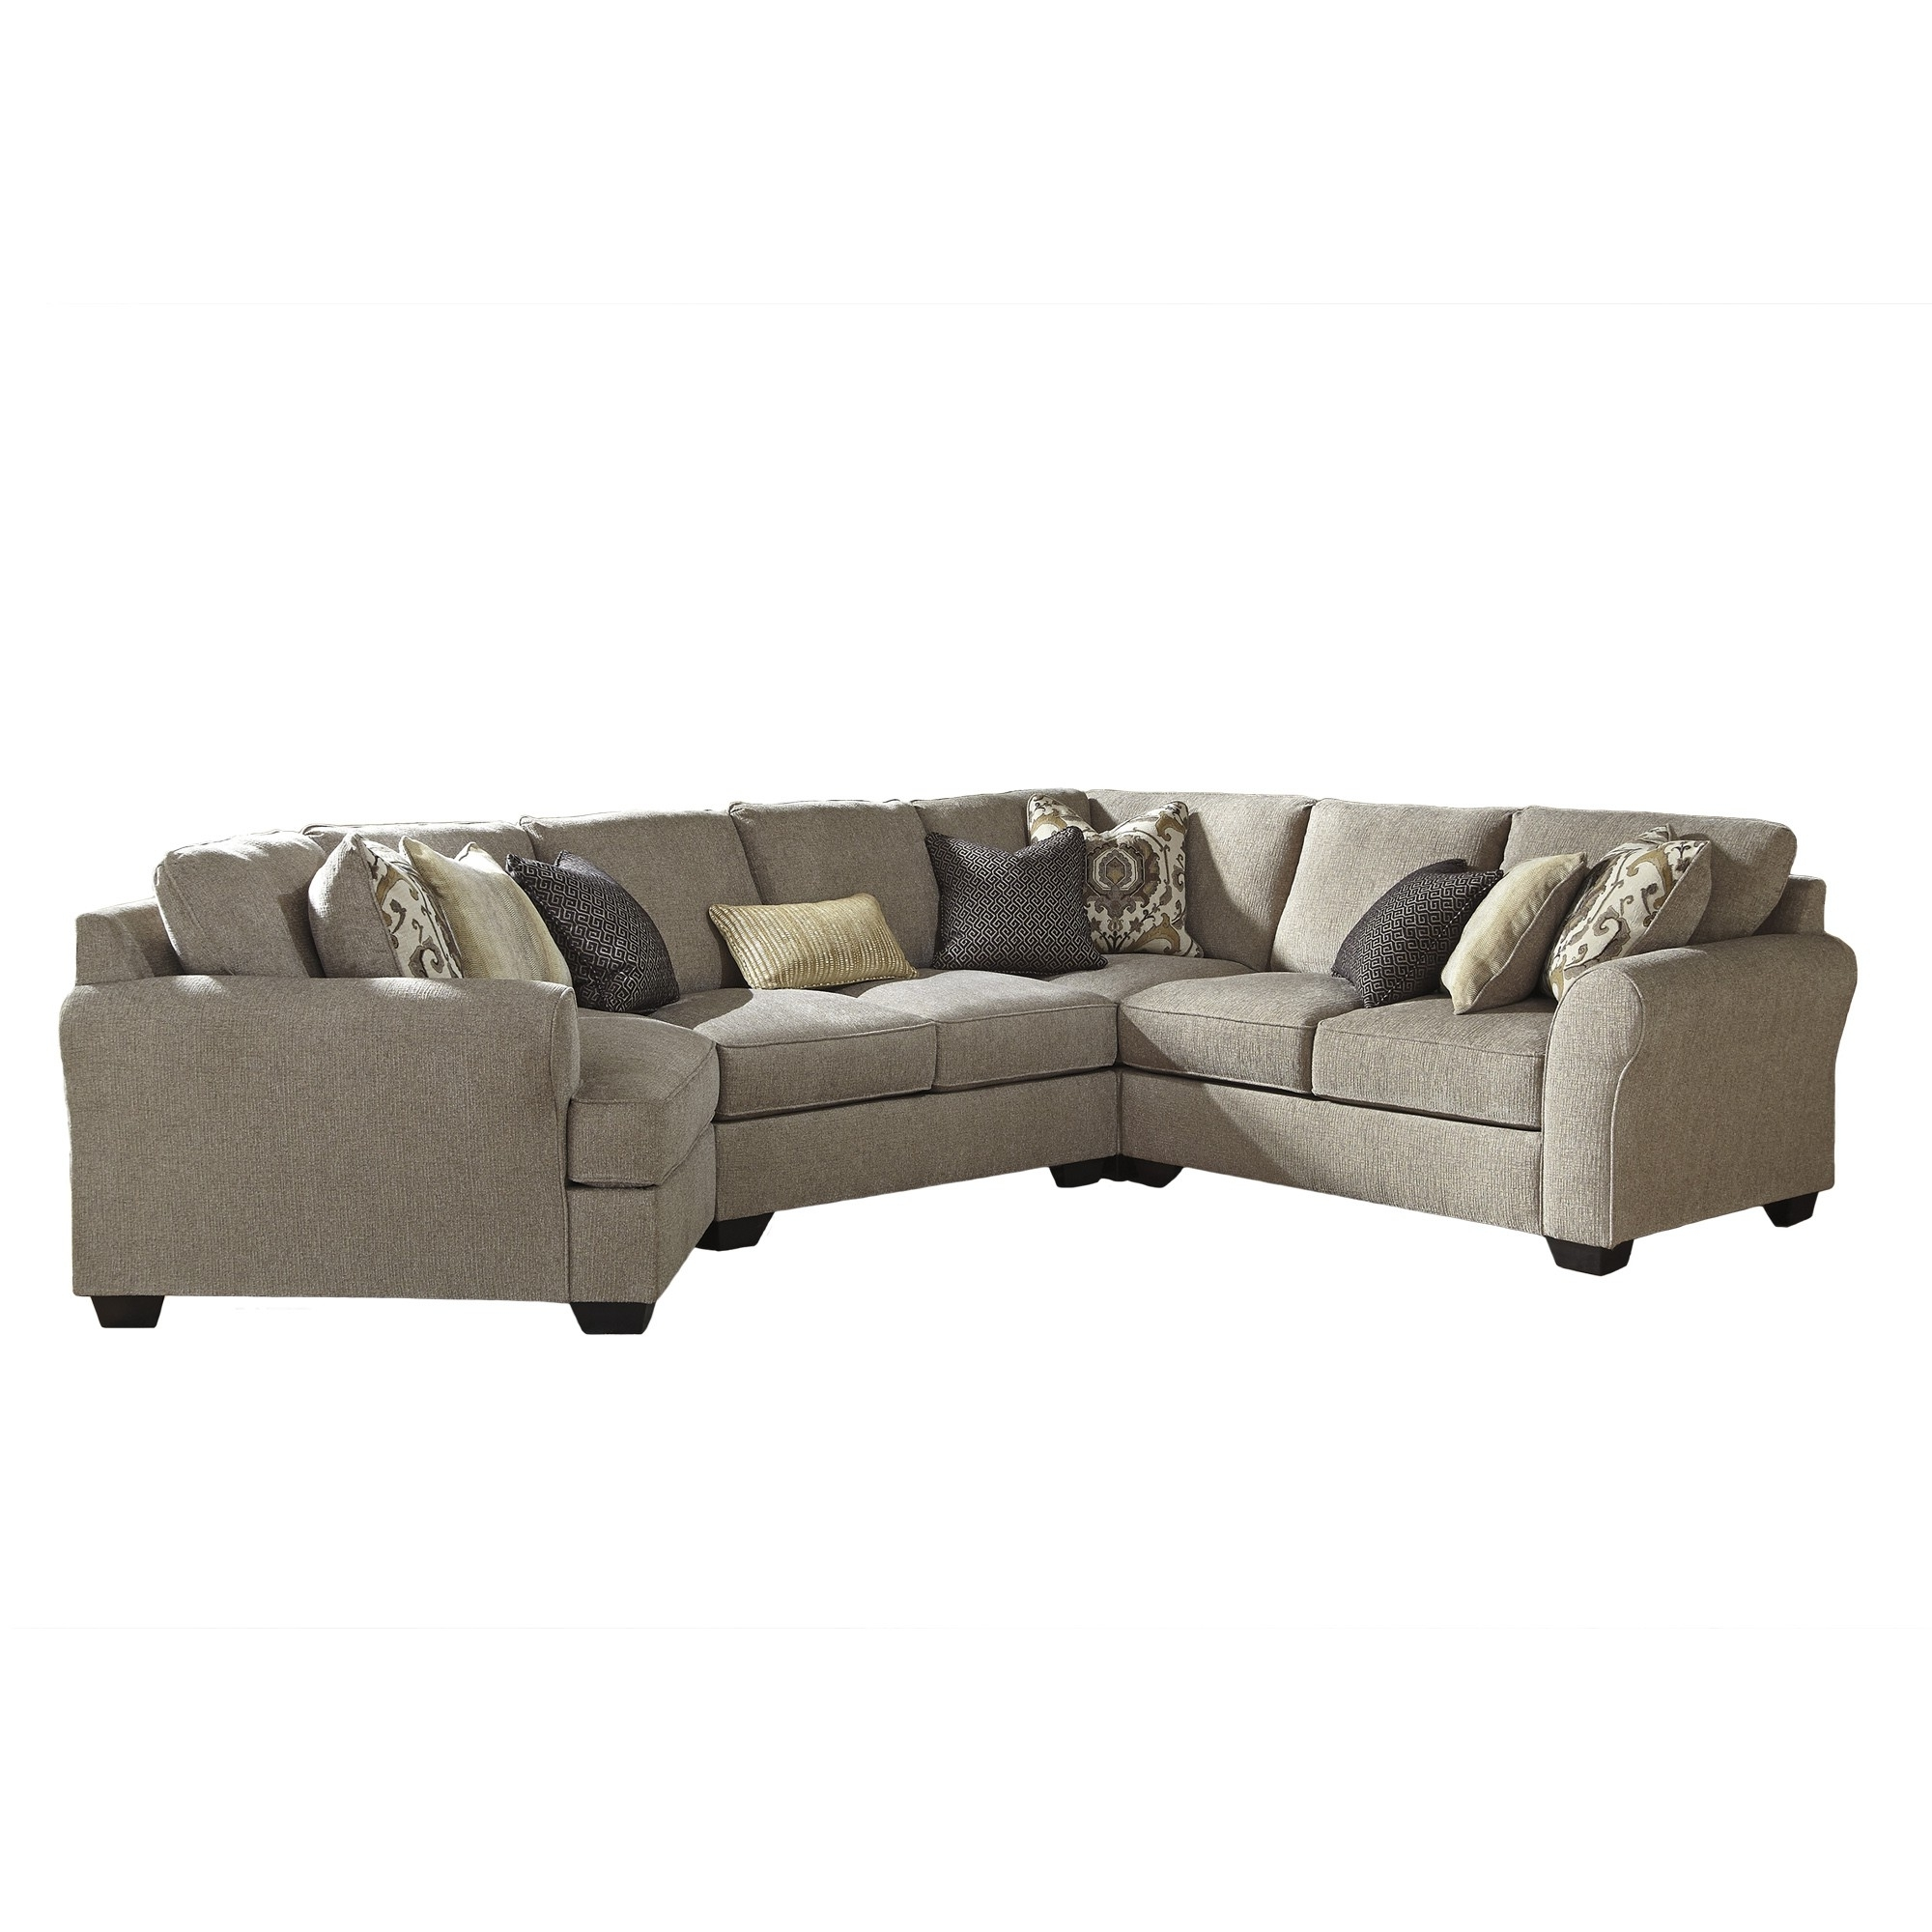 Tepperman's Regarding Teppermans Sectional Sofas (View 13 of 20)